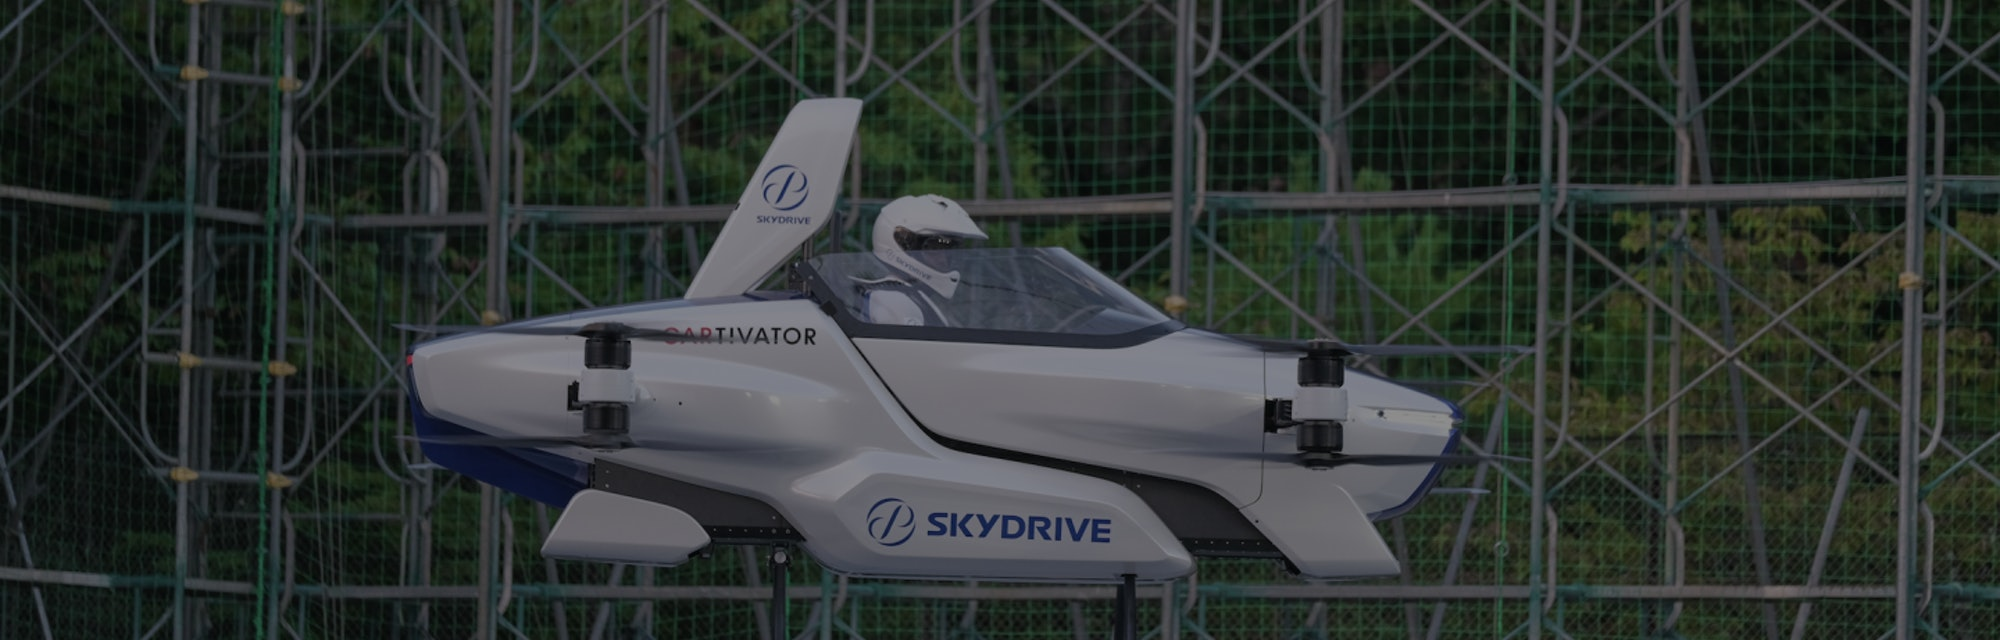 SkyDrive's SD-03 is a single-seat eVTOL aircraft.